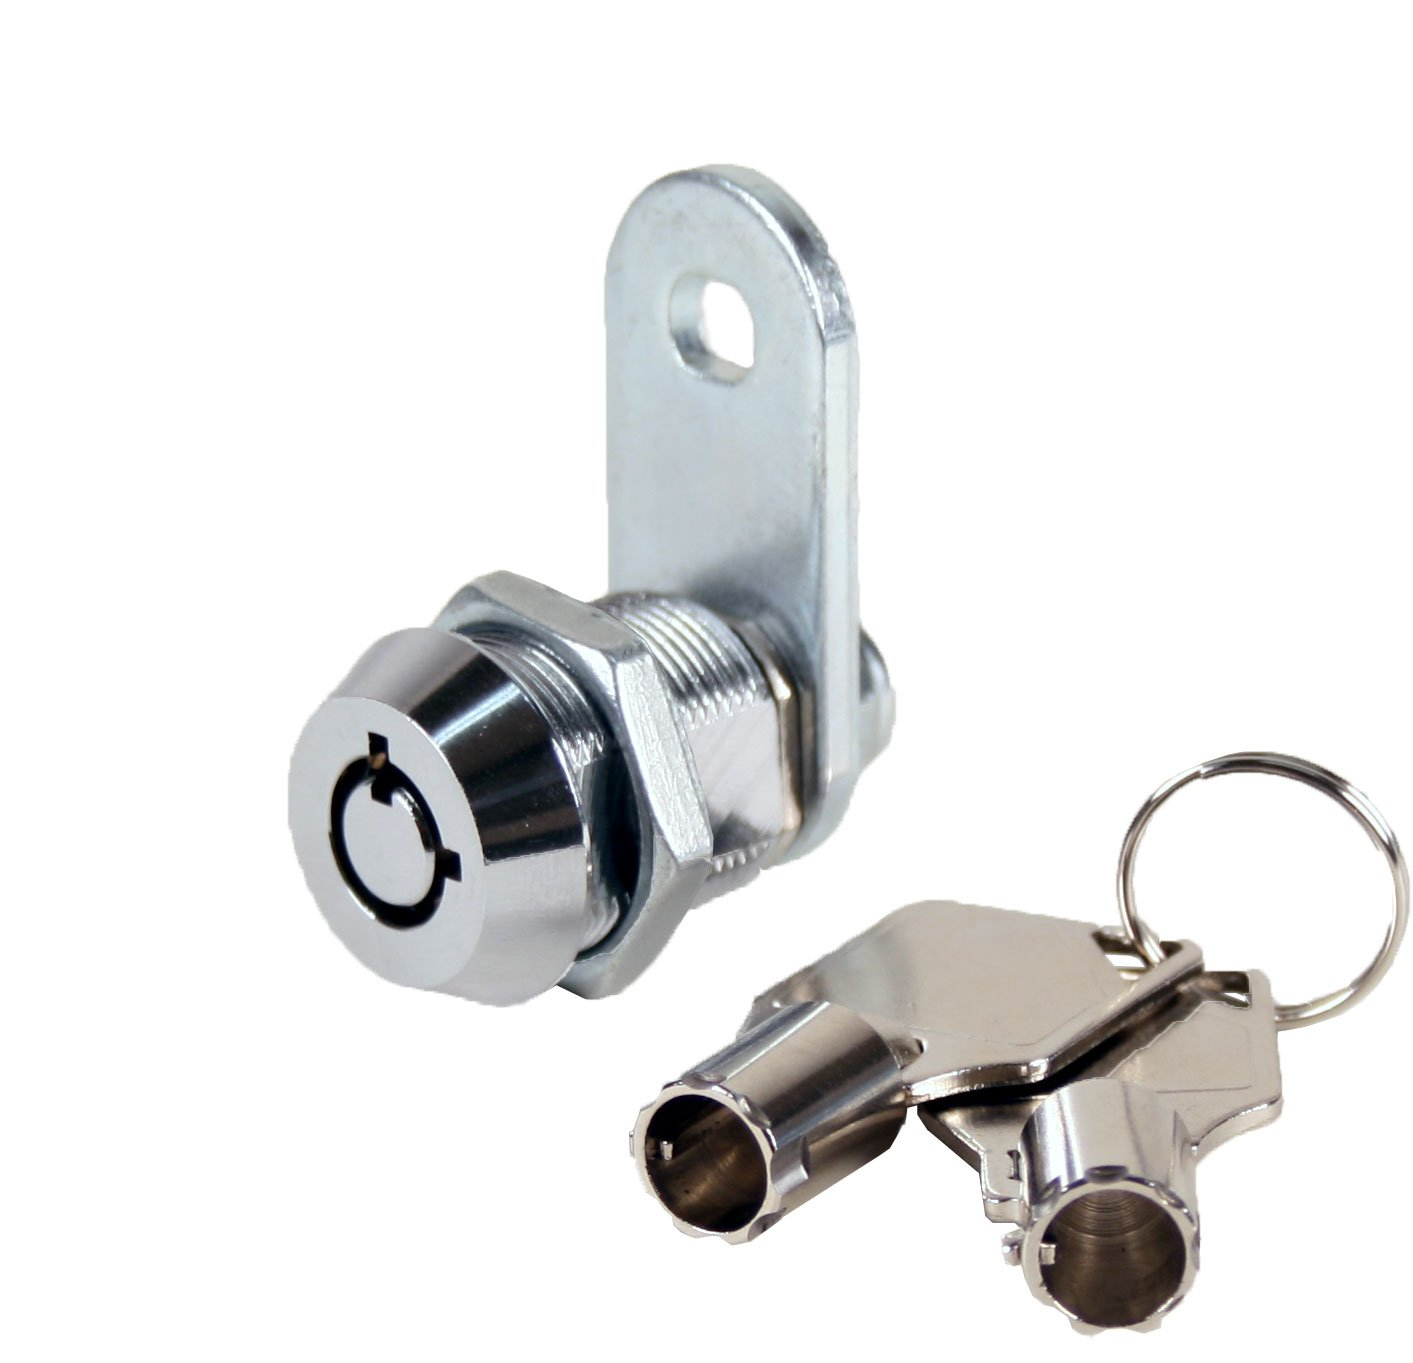 FJM Security 2400AS-KD Tubular Cam Lock with 5/8'' Cylinder and Chrome Finish, Keyed Different